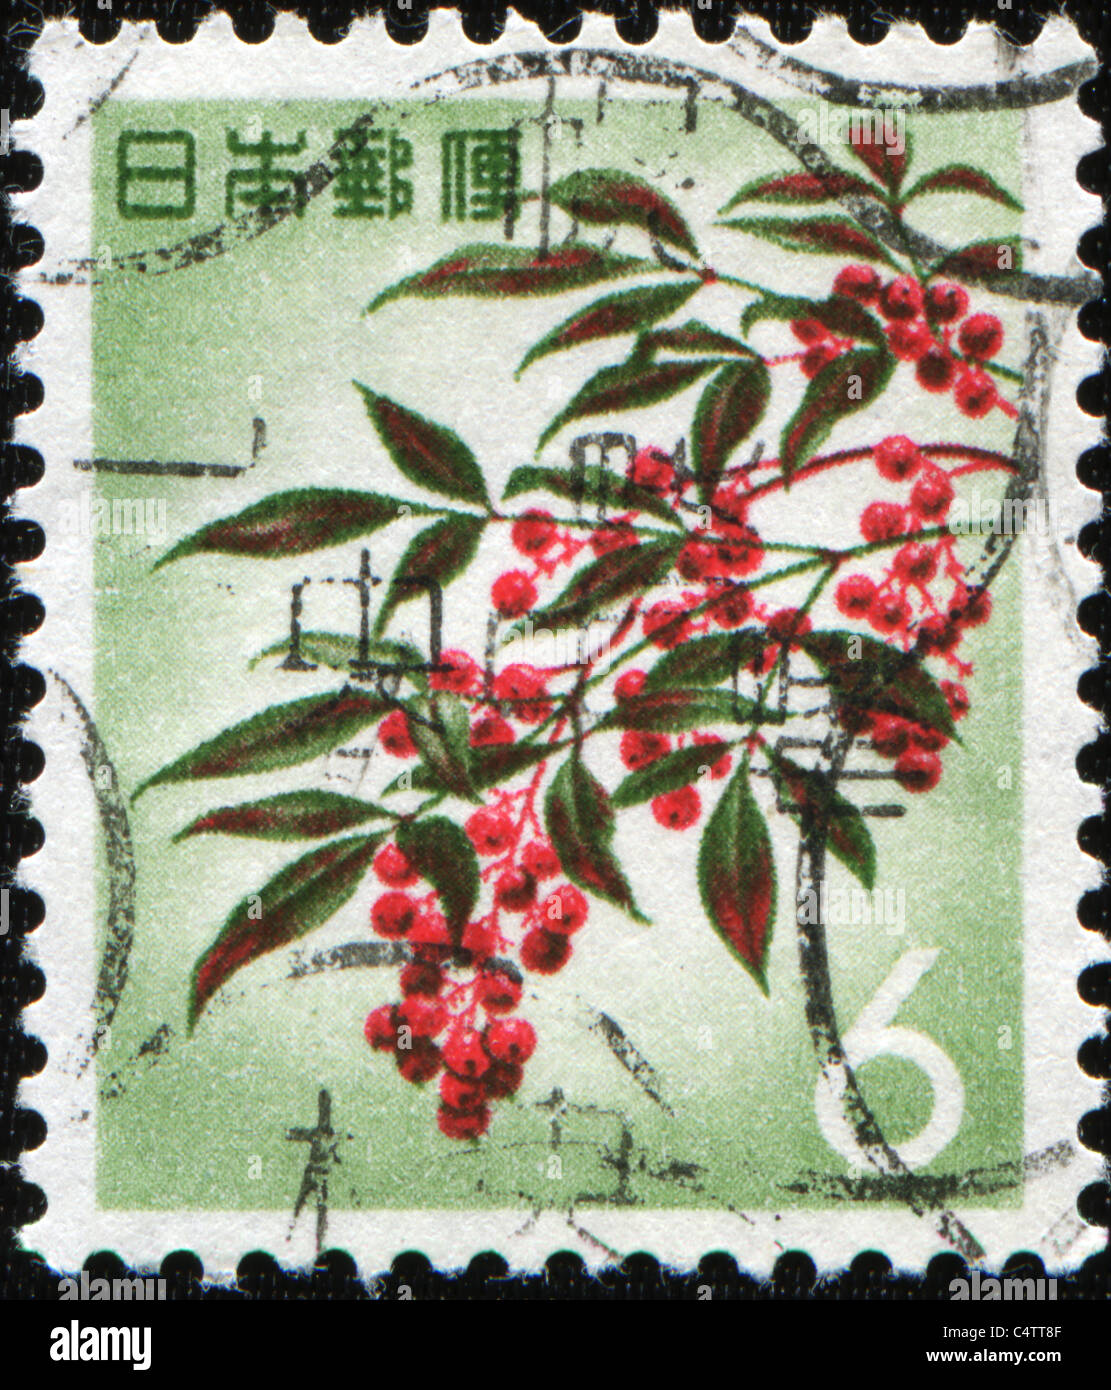 JAPAN - CIRCA 1960s: A stamp printed in Japan shows Japanese rowans or mountain-ashes - Sorbus commixta, circa 1960s Stock Photo